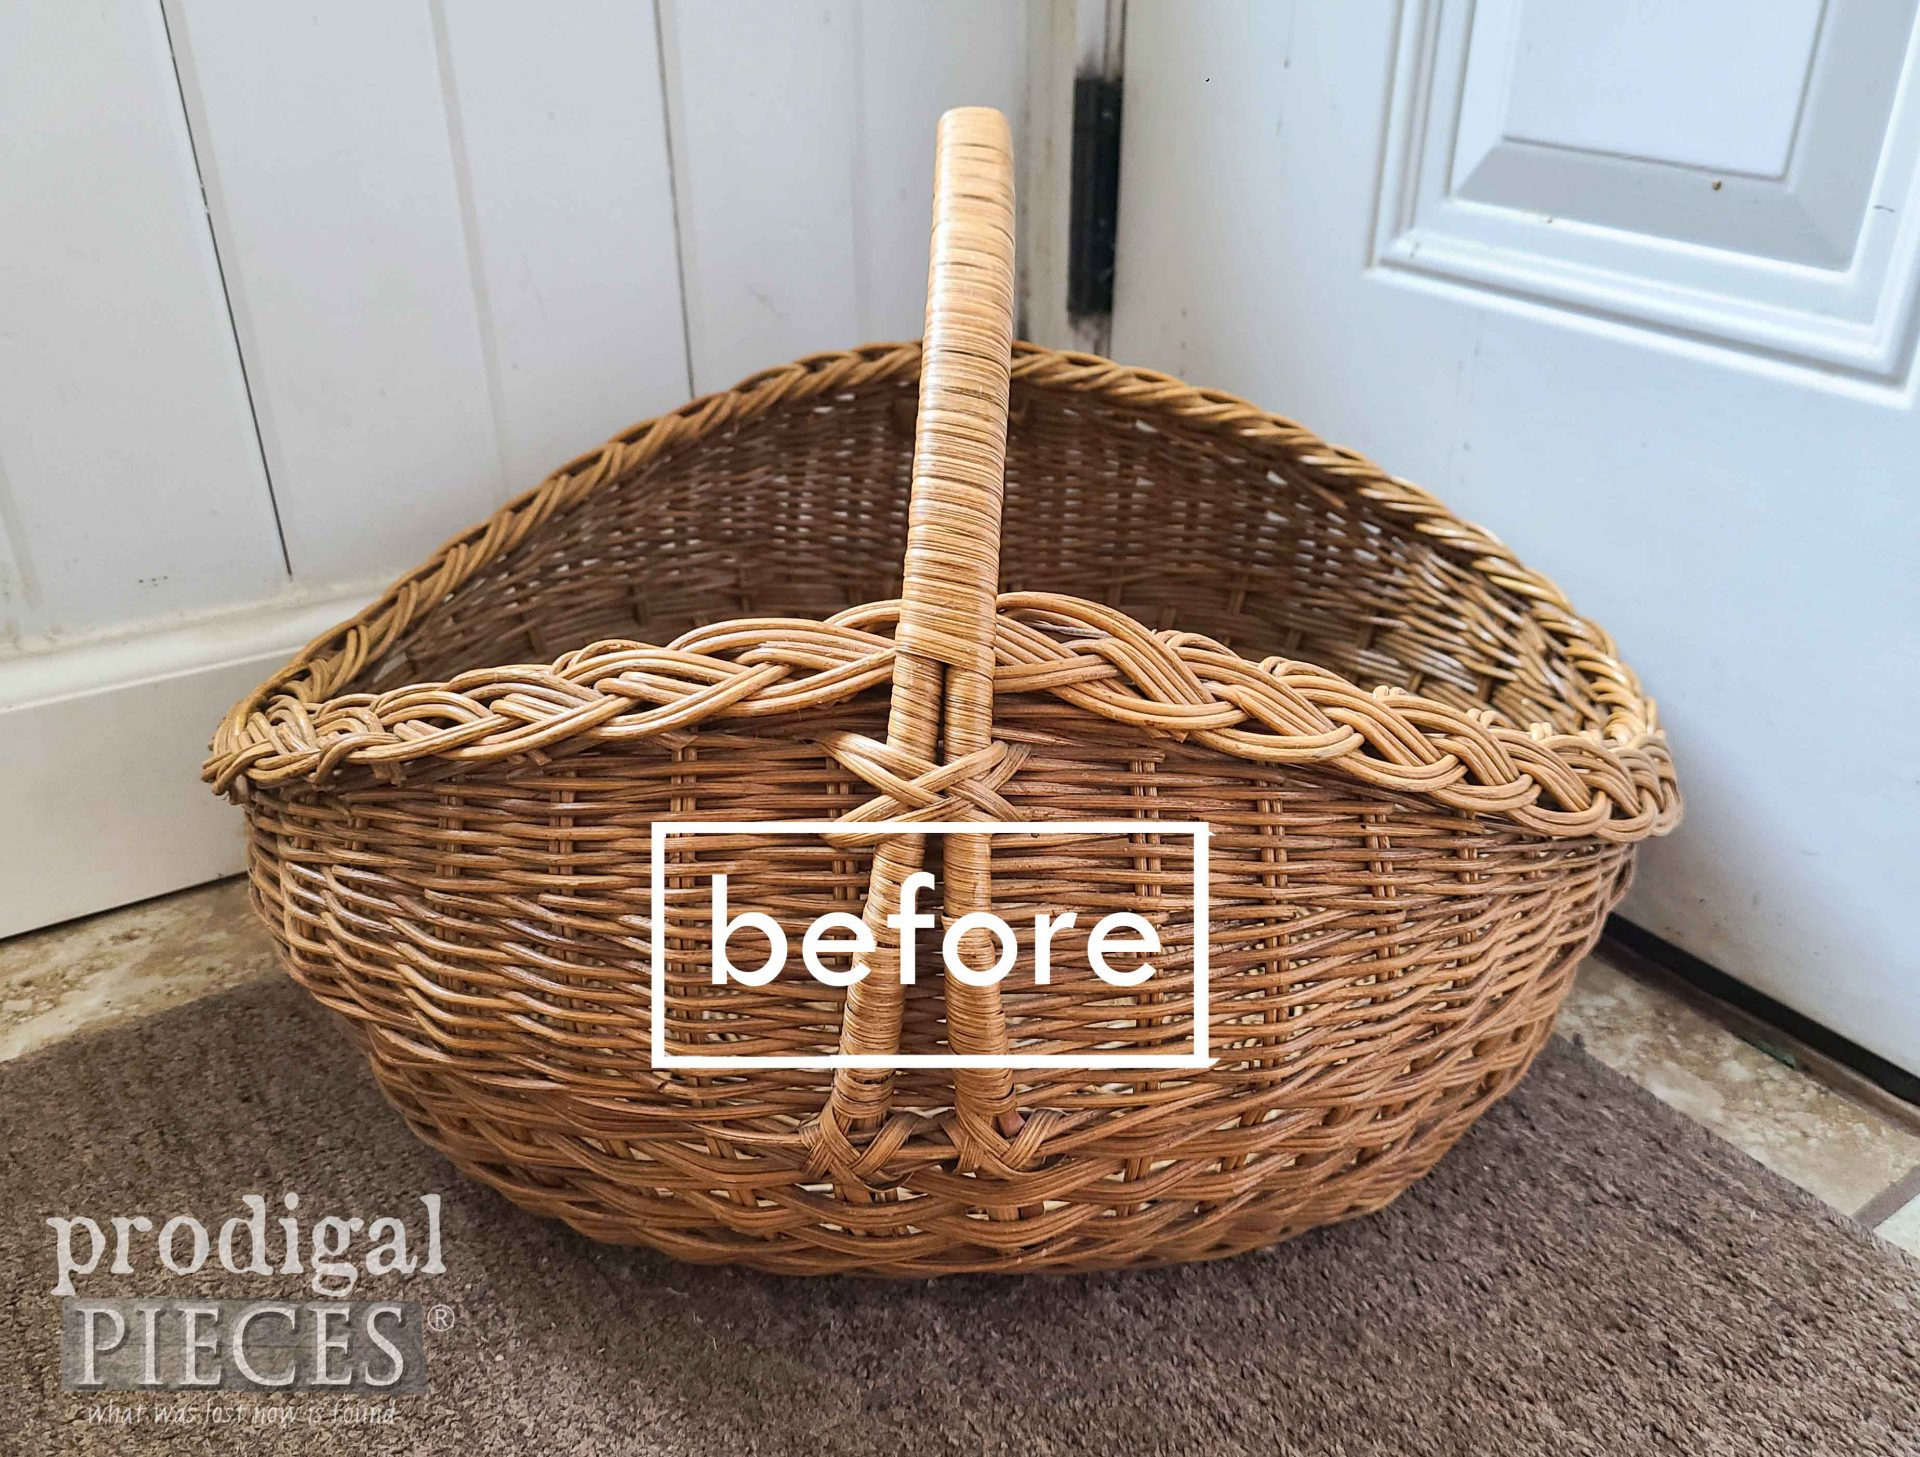 Before of Thrifted Basket | prodigalpieces.com